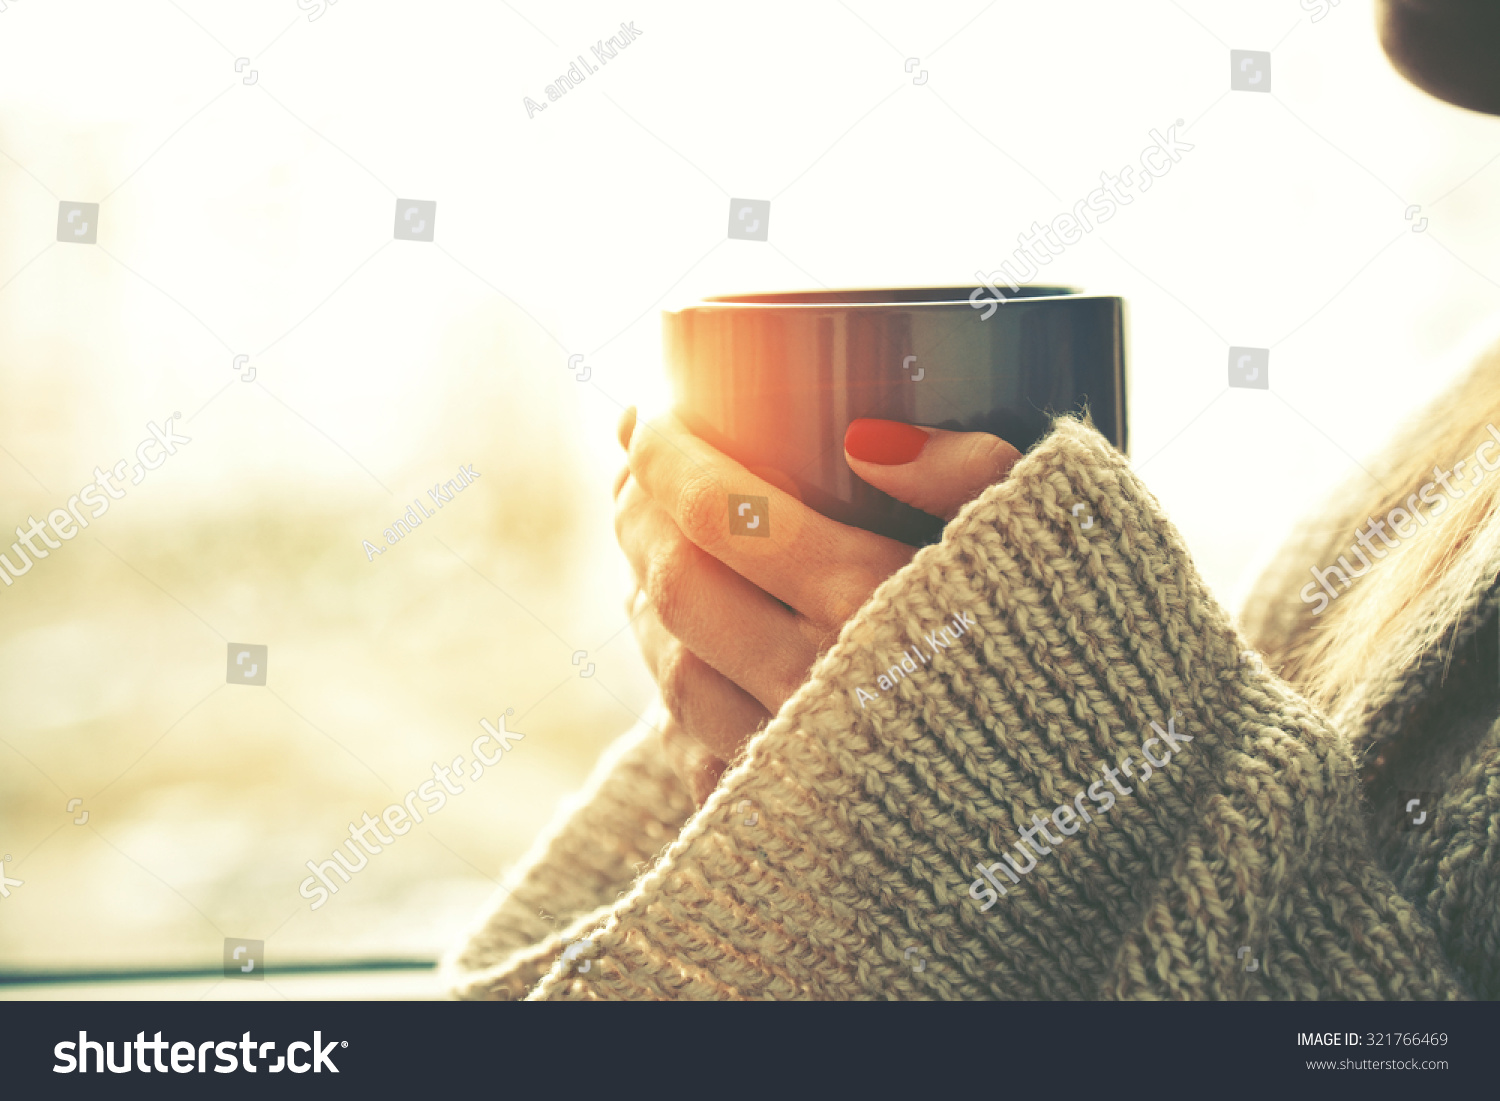 hands holding hot cup of coffee or tea in morning sunlight #321766469